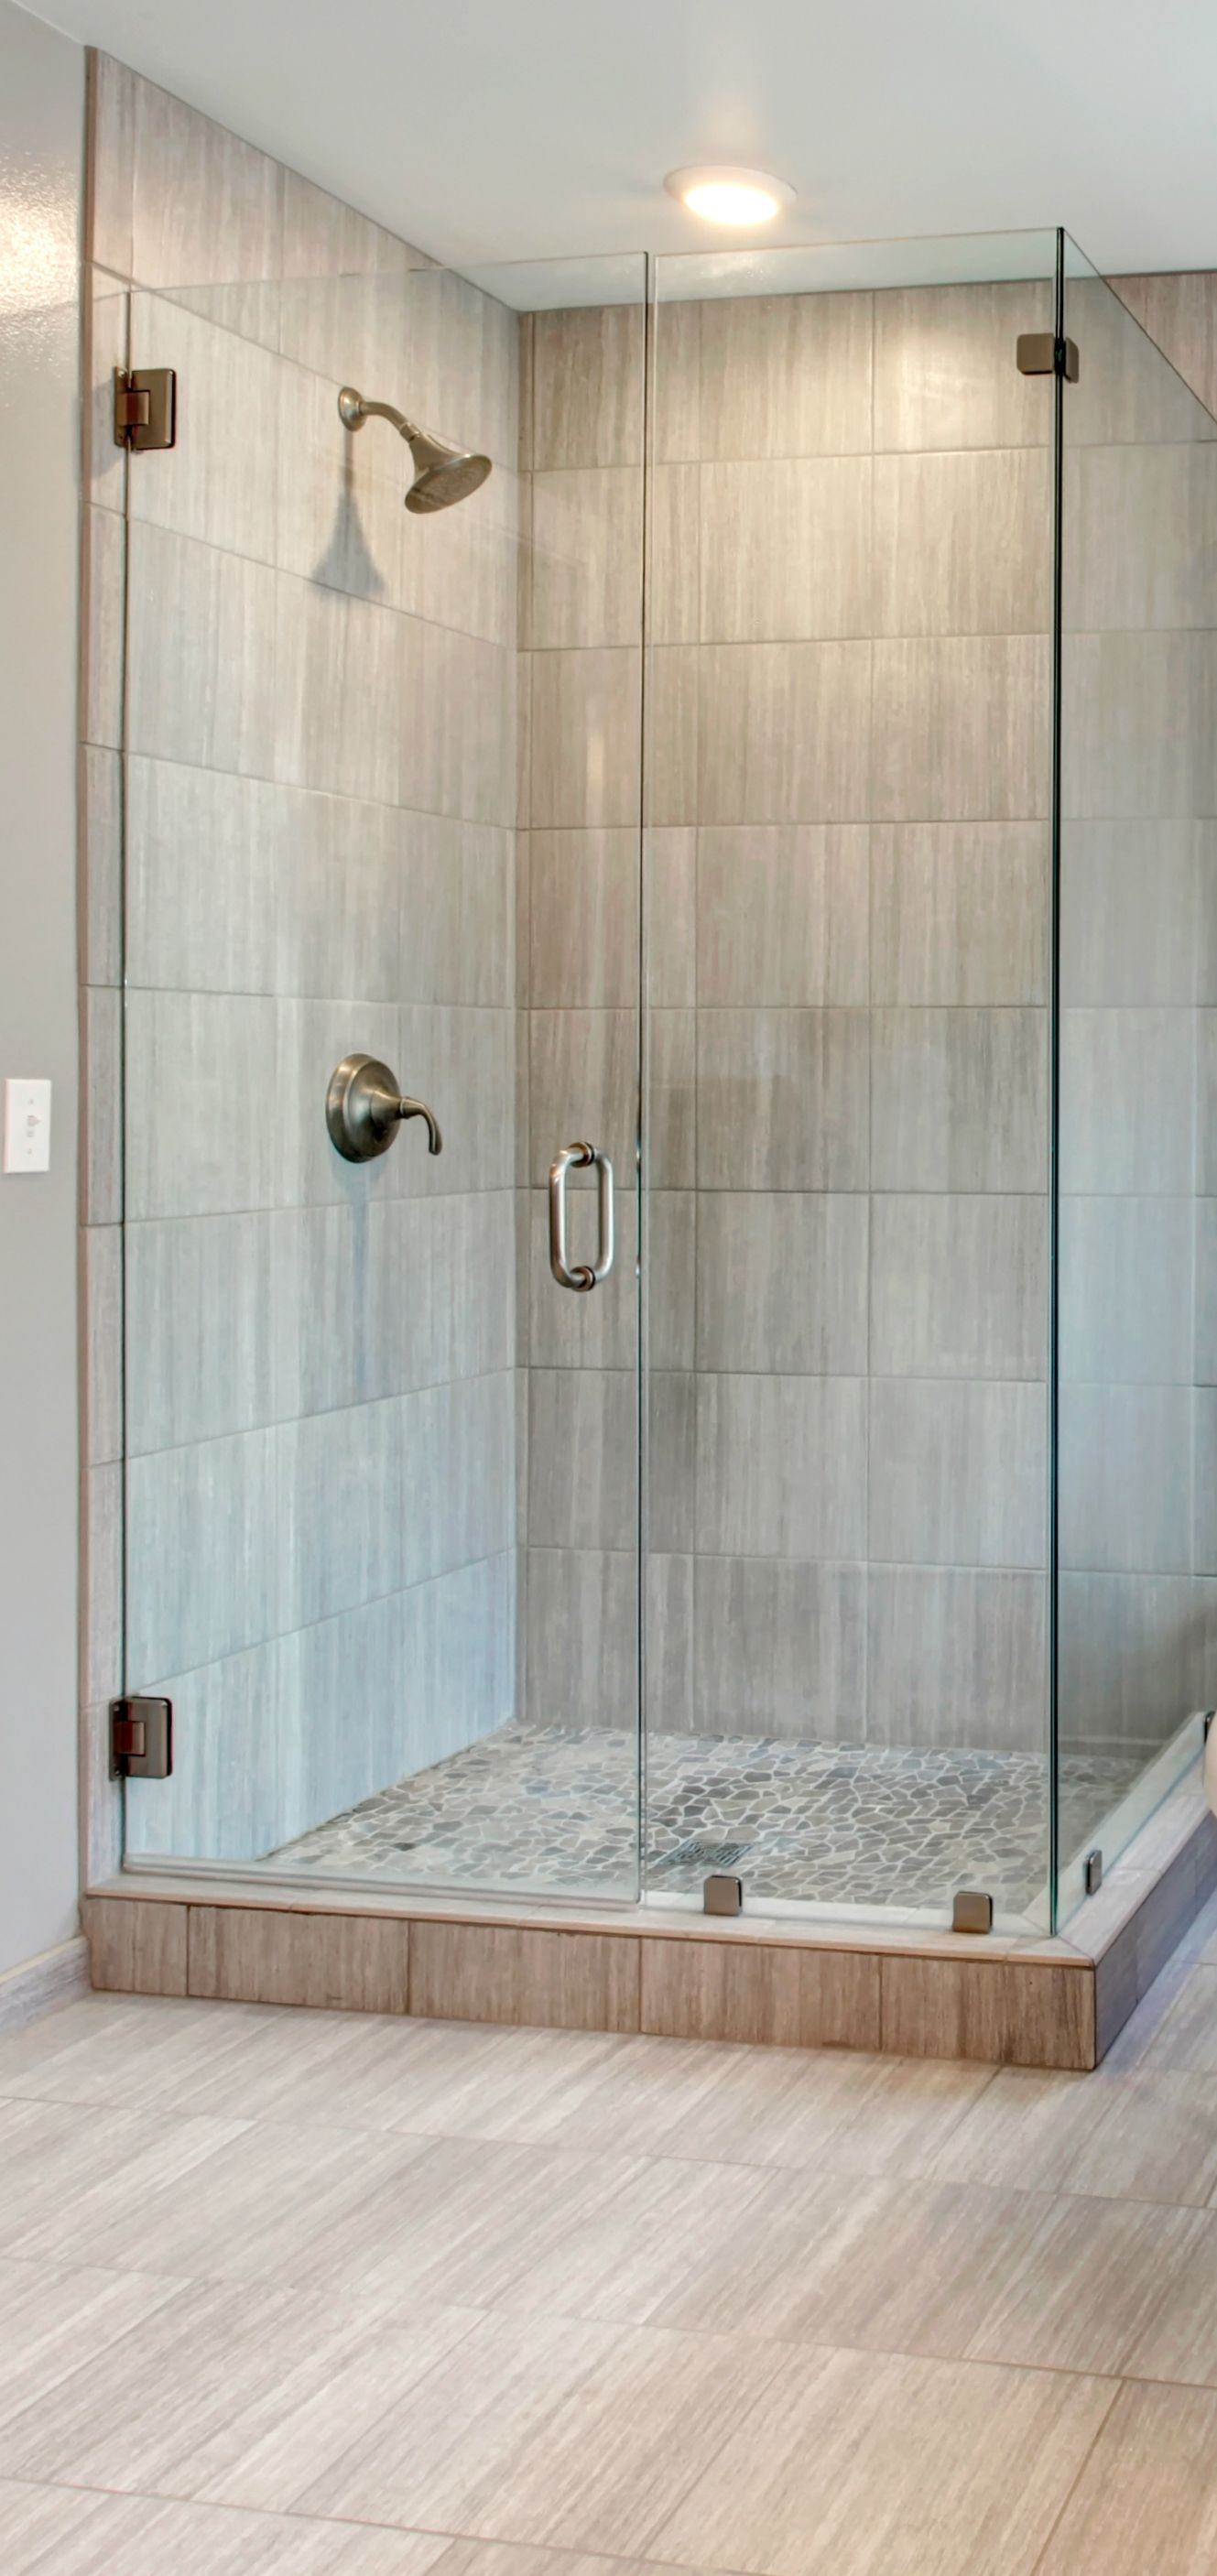 Showers Corner Walk In Shower Ideas For Simple Small Bathroom With - Corner showers for small bathrooms for bathroom decor ideas